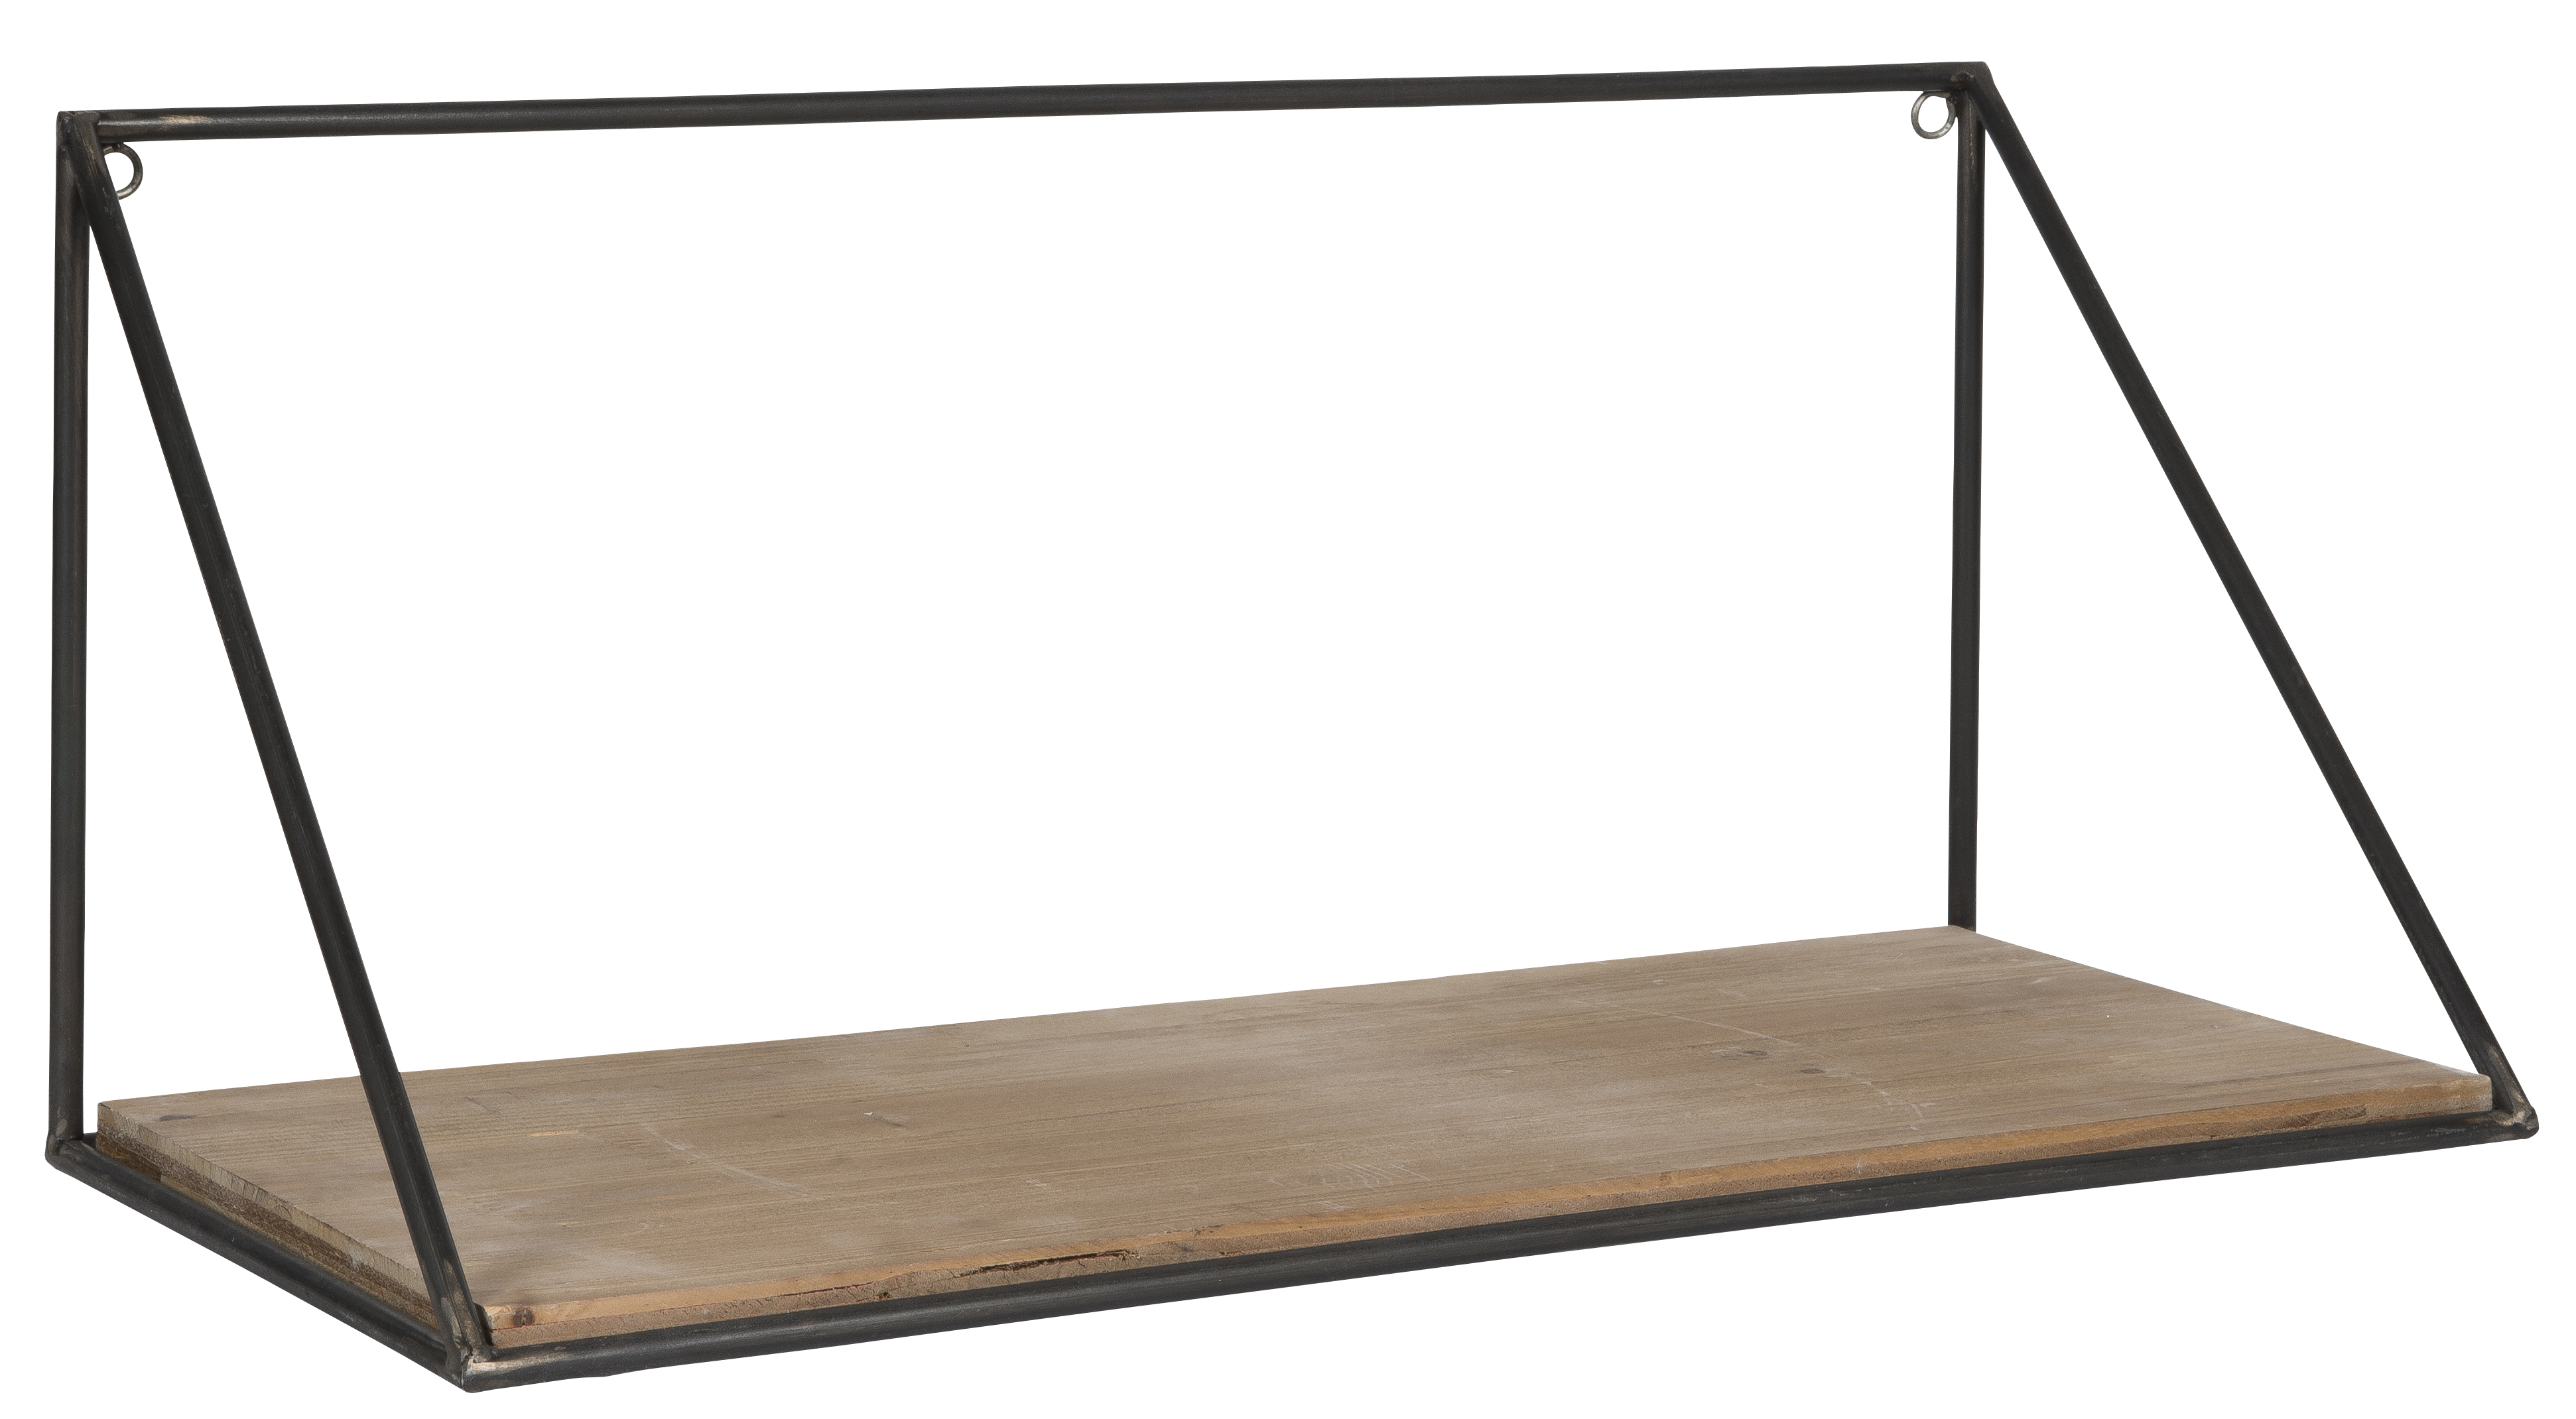 Wooden Wall Shelf With Metal Triangular Sides